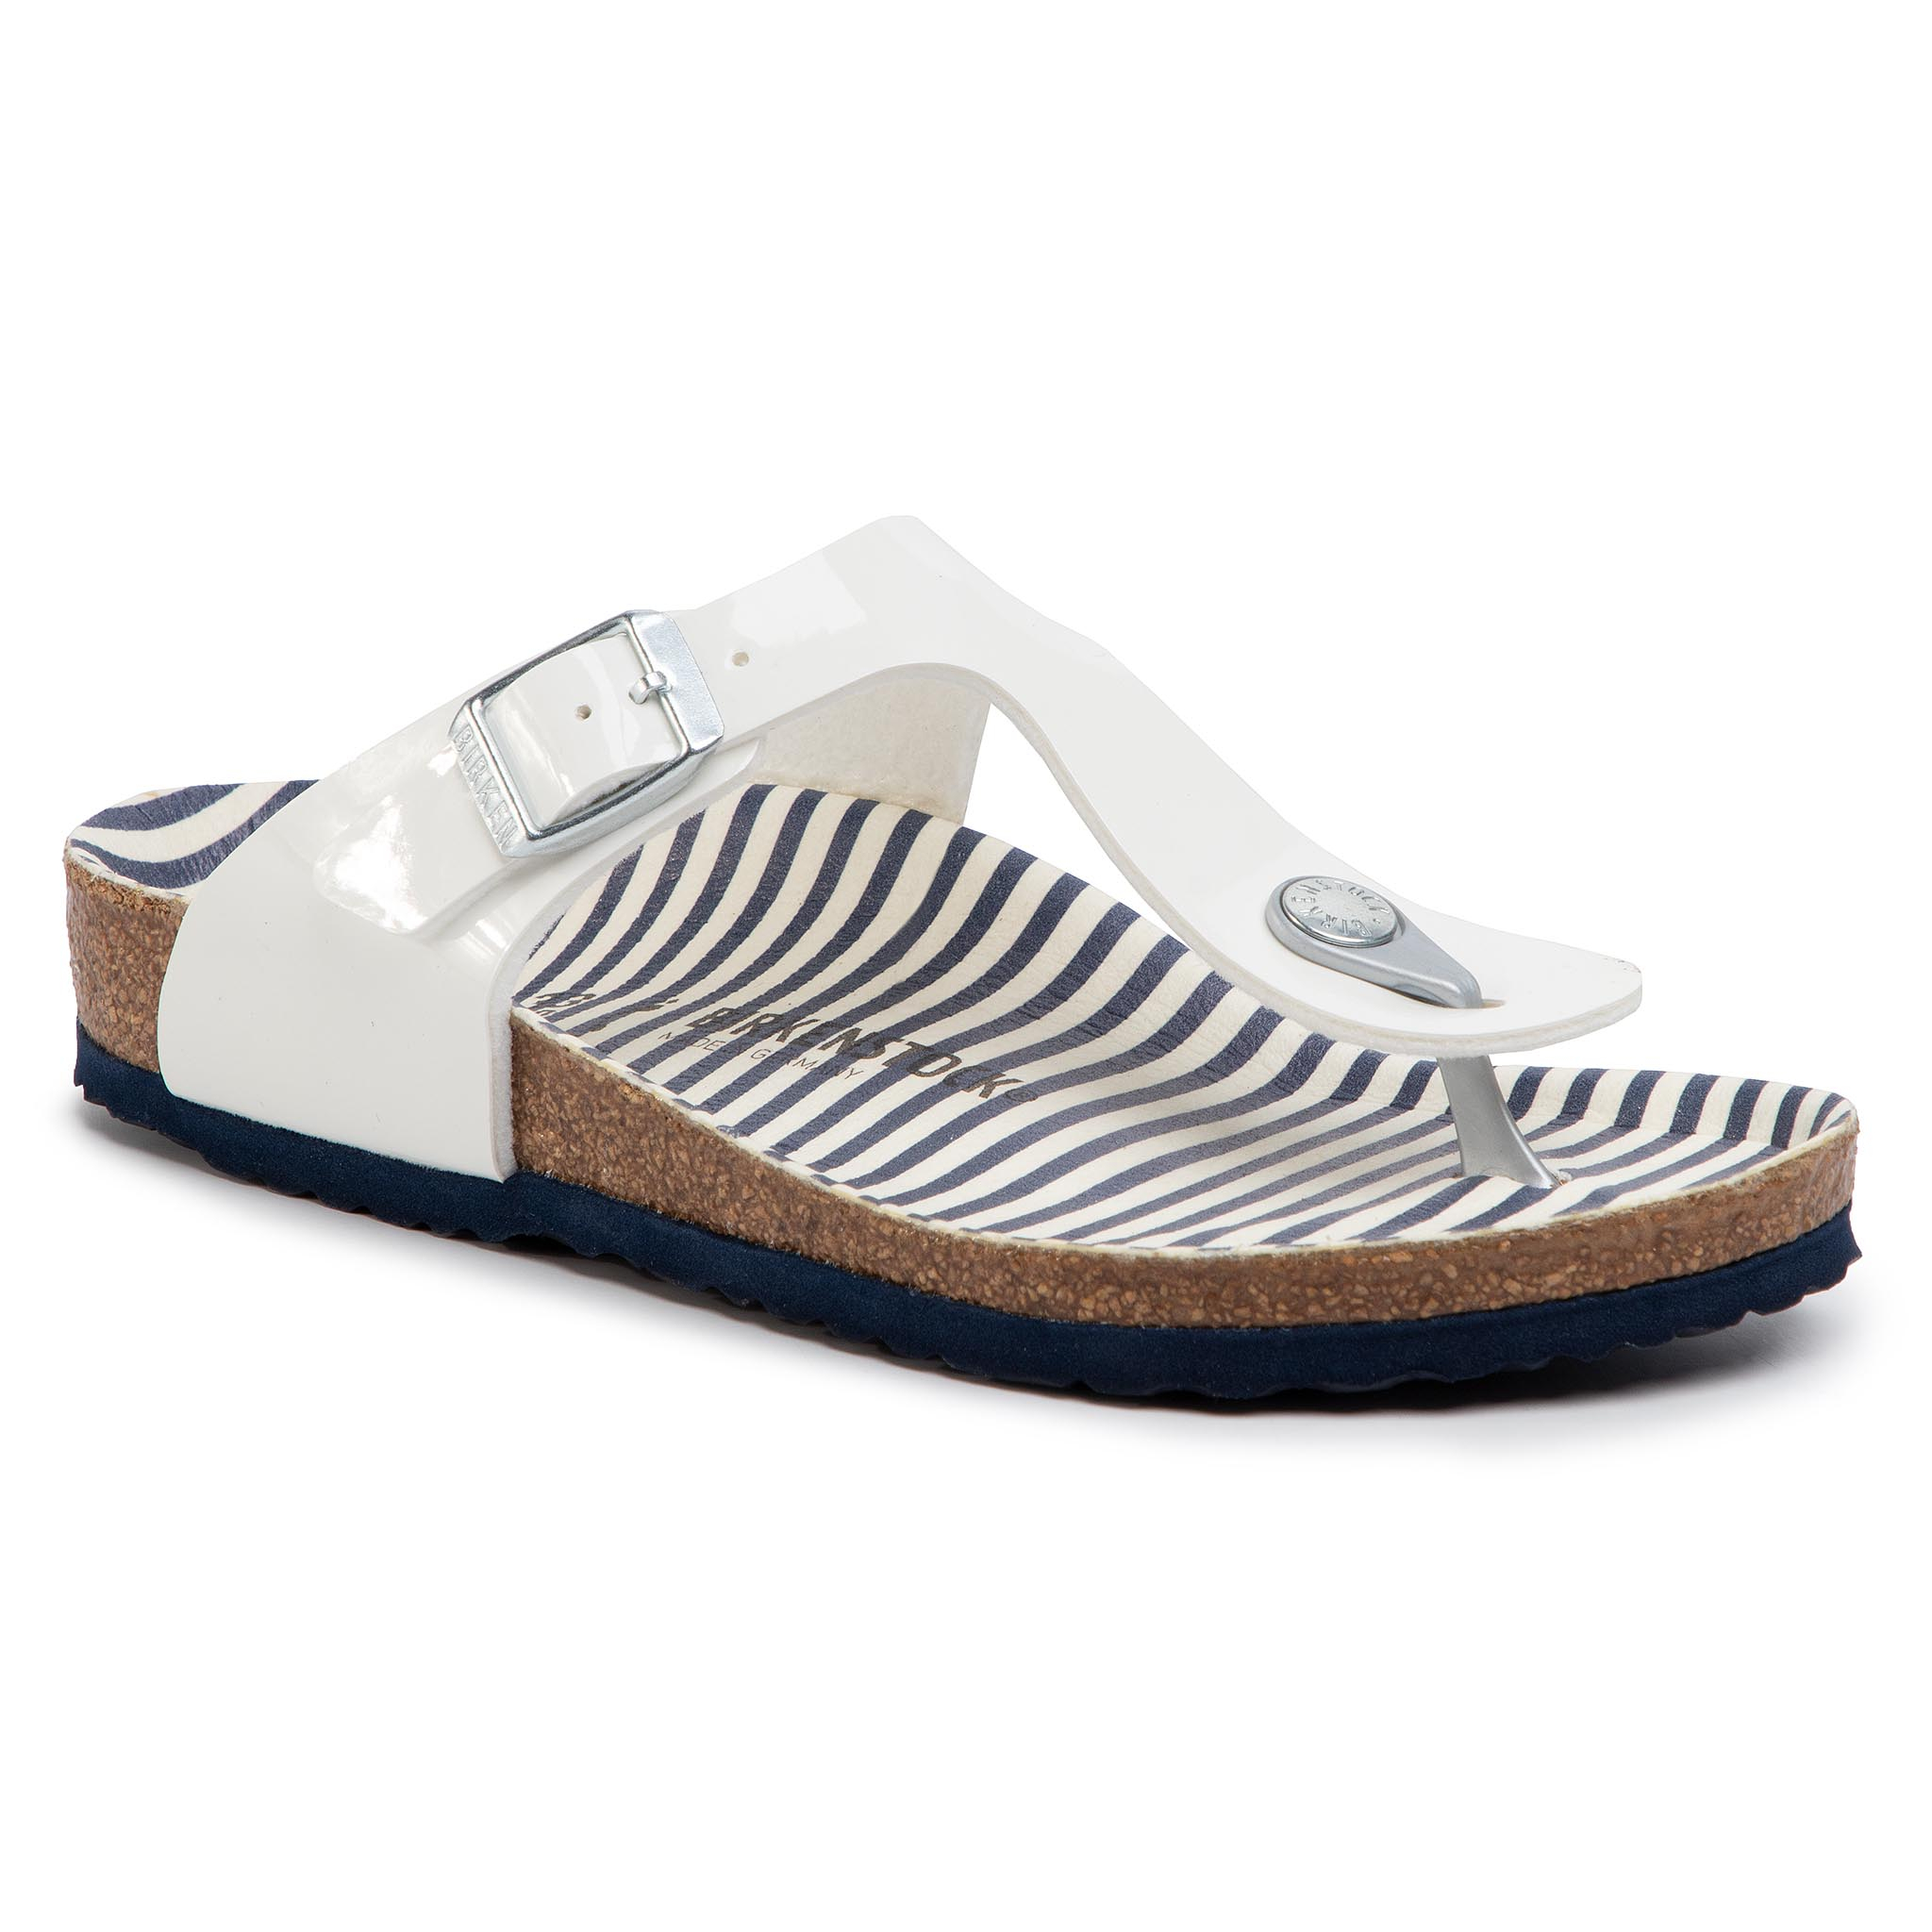 Šlepetės per pirštą BIRKENSTOCK - Gizeh Kids Bs 1012724 M Nautical Stripes White